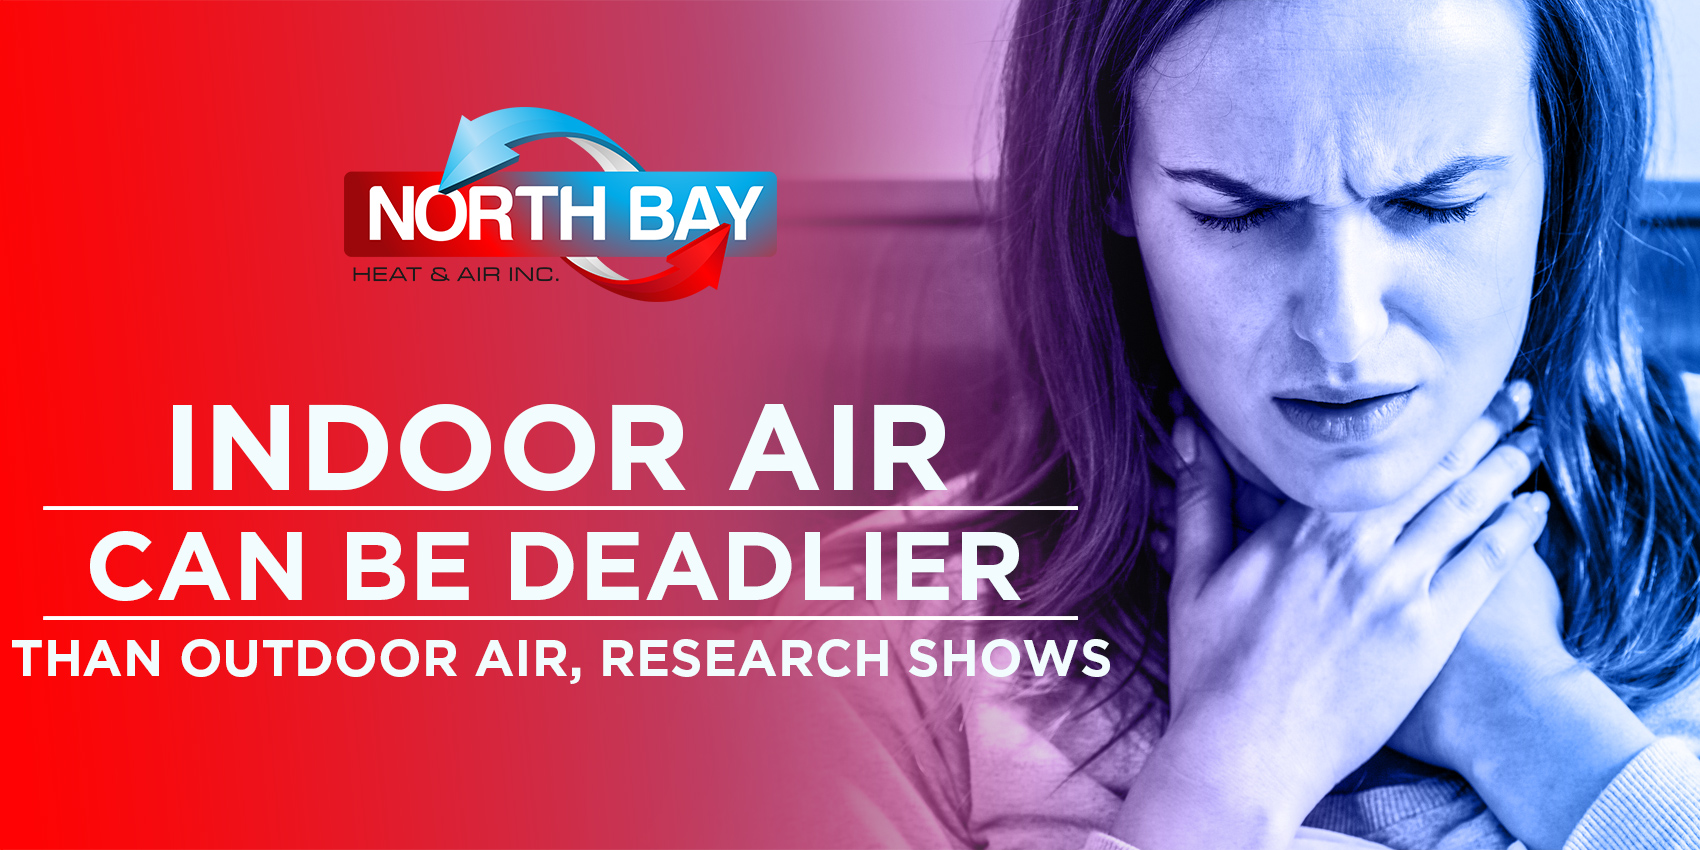 Indoor Air Can Be Deadlier Than Outdoor Air, Research Shows